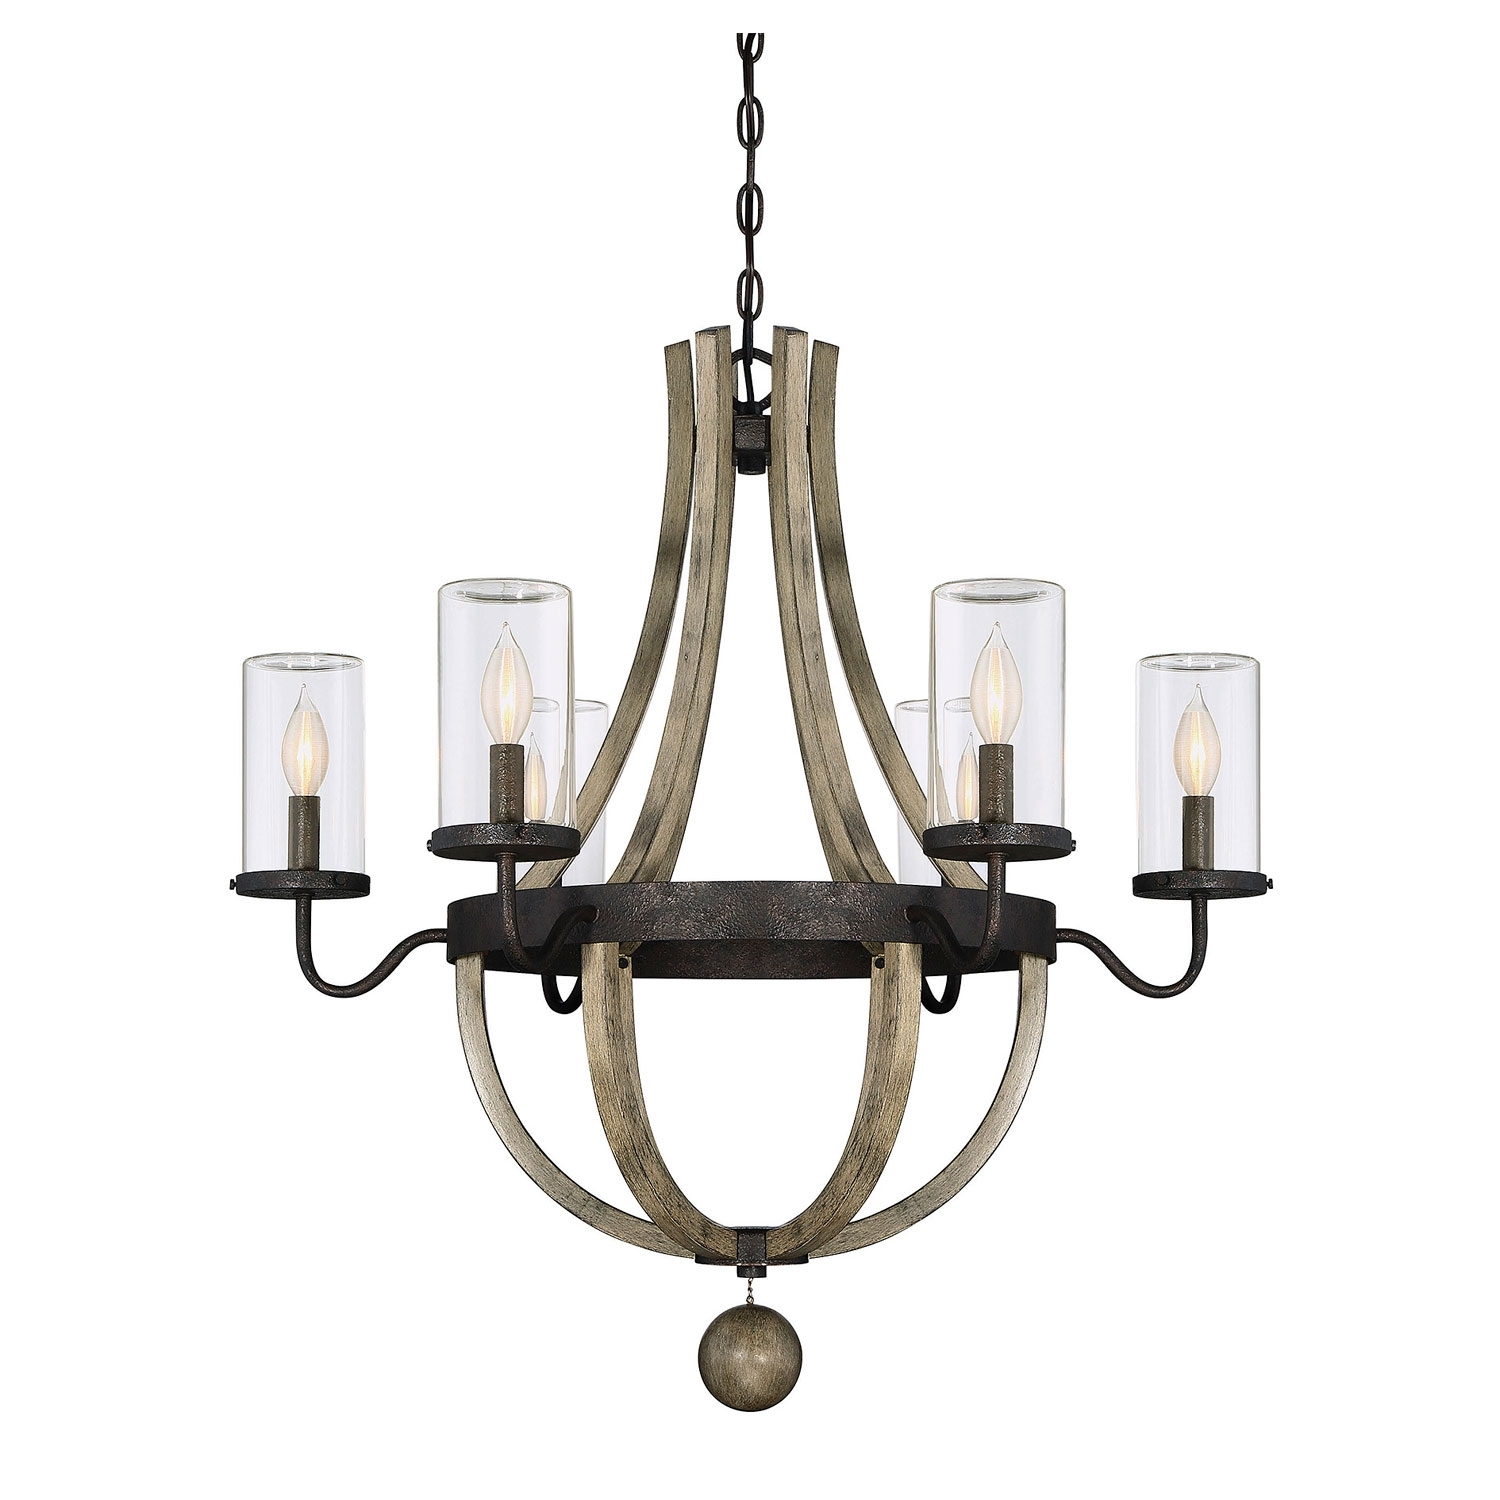 Outdoor Hanging Lights On Sale   Bellacor With Big Outdoor Hanging Lights (#11 of 15)